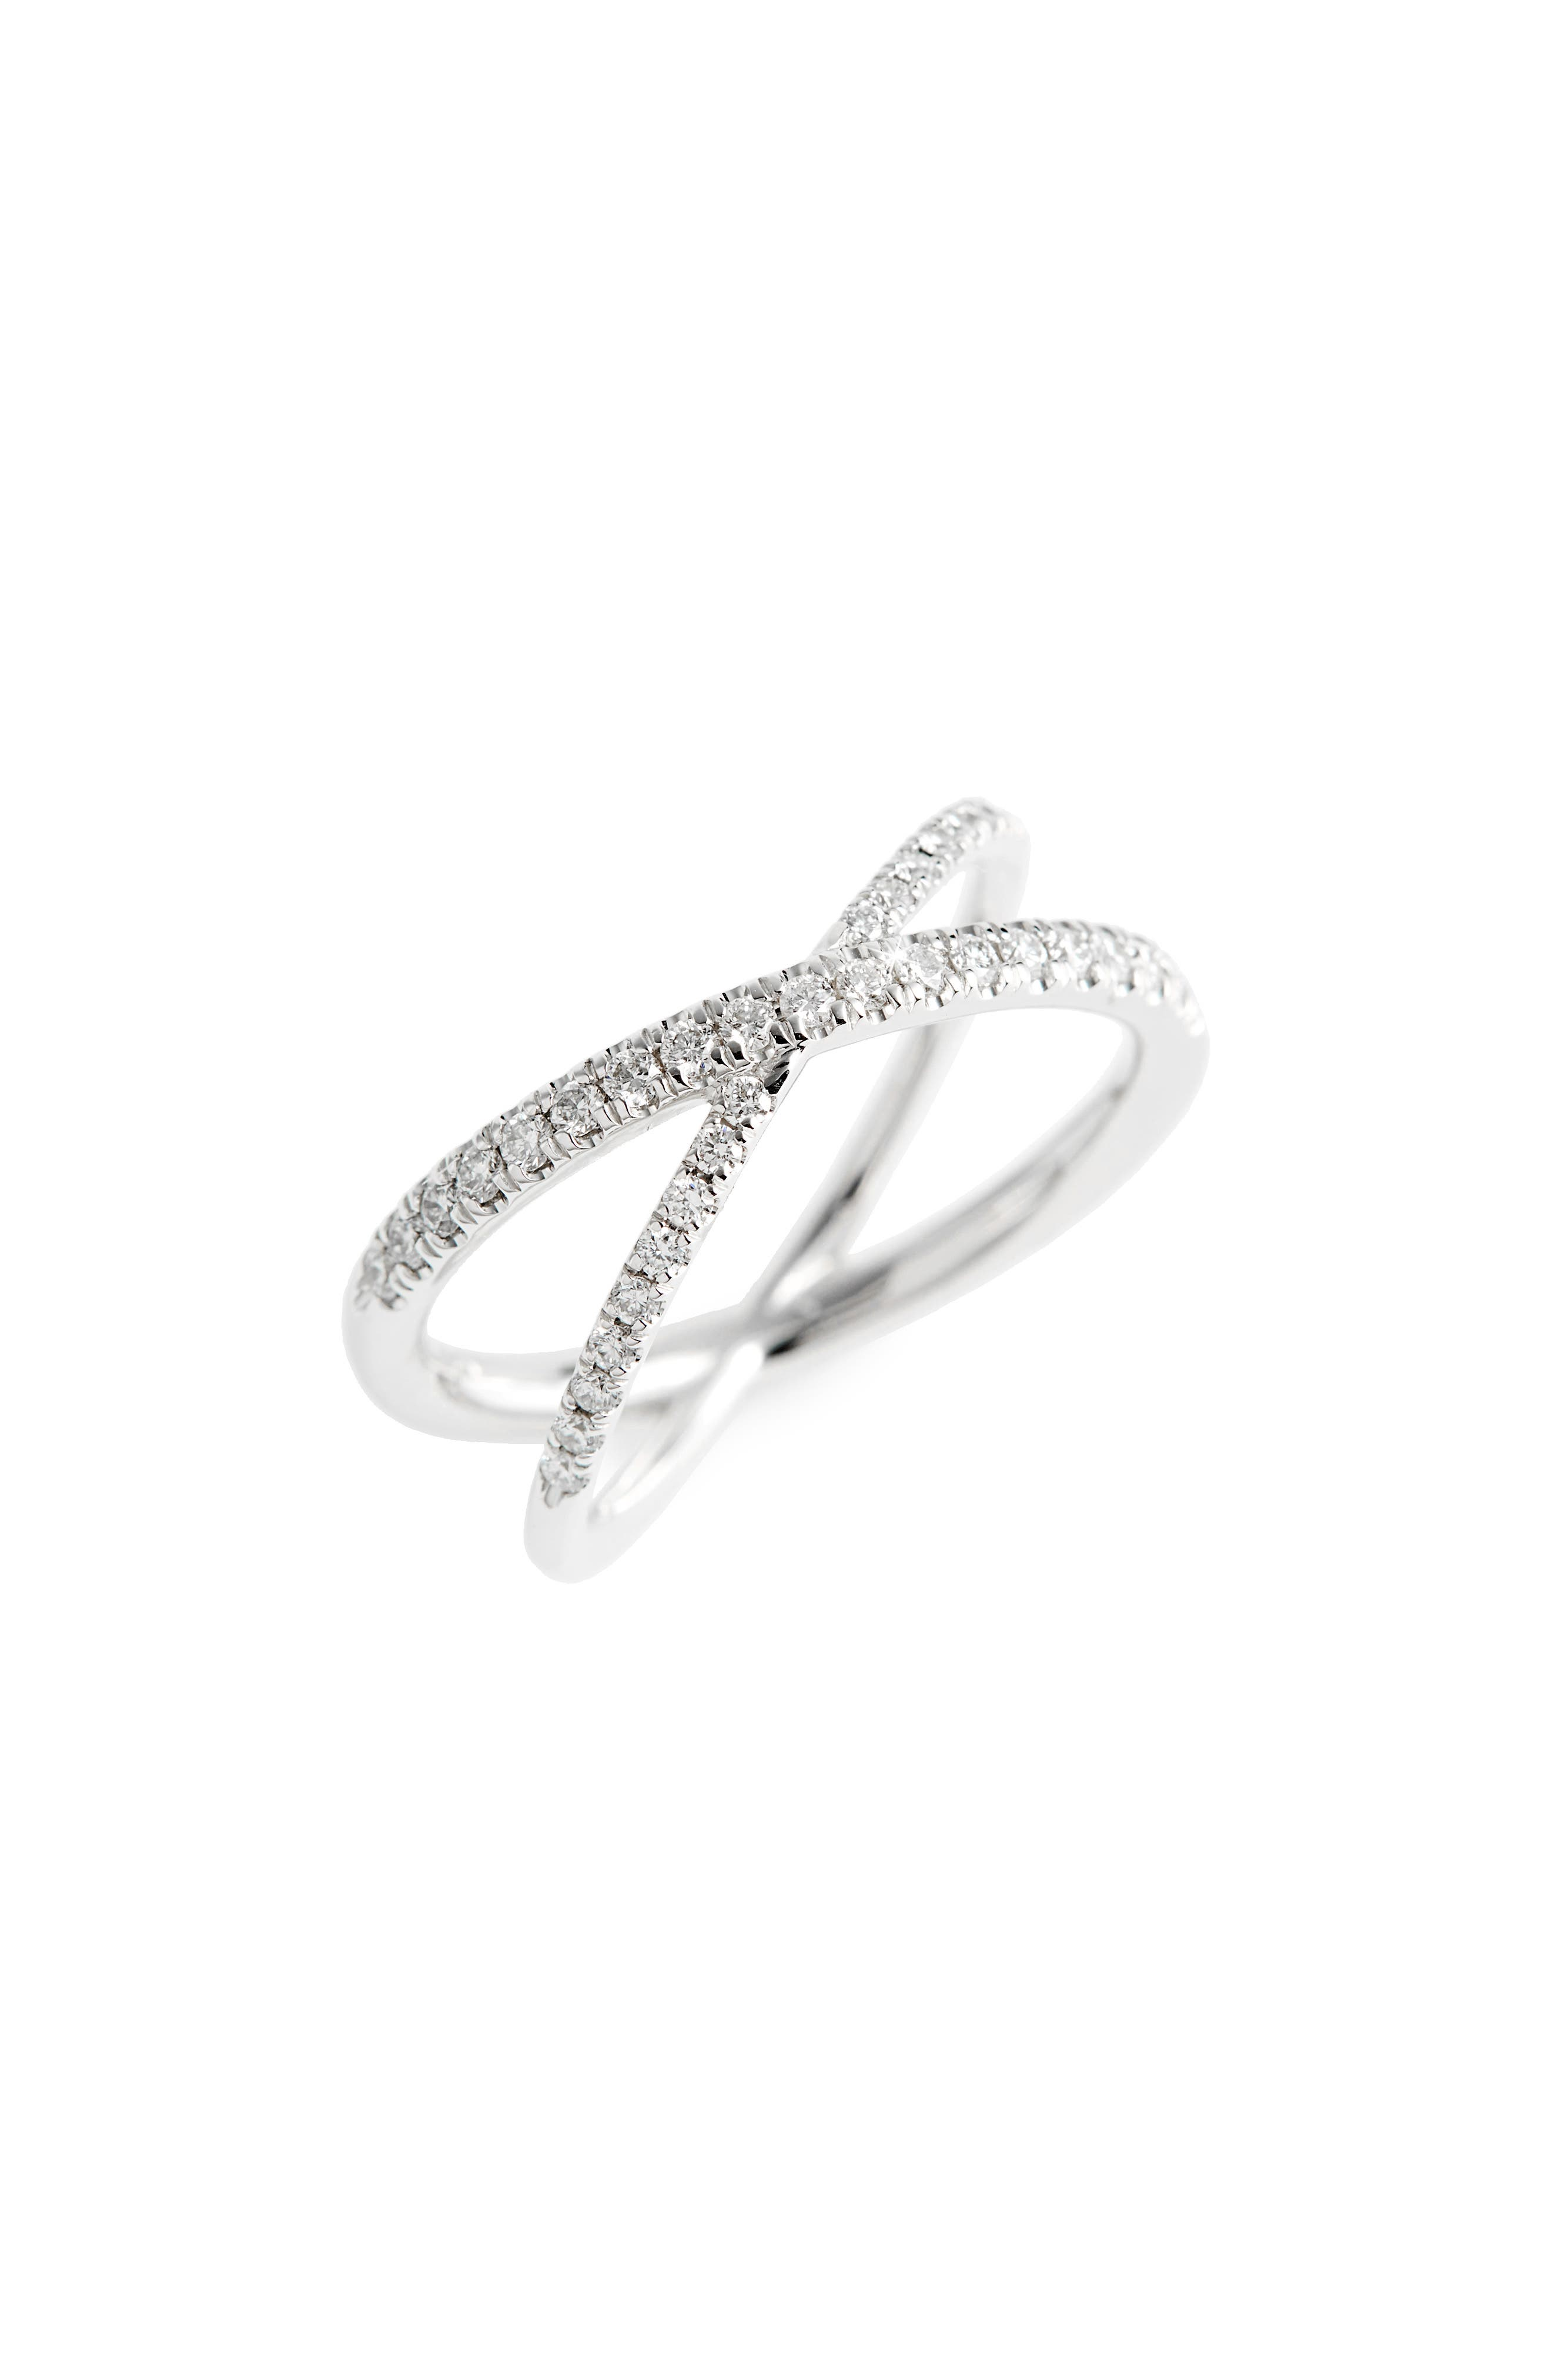 Diamond Crisscross Ring,                             Main thumbnail 1, color,                             WHITE GOLD